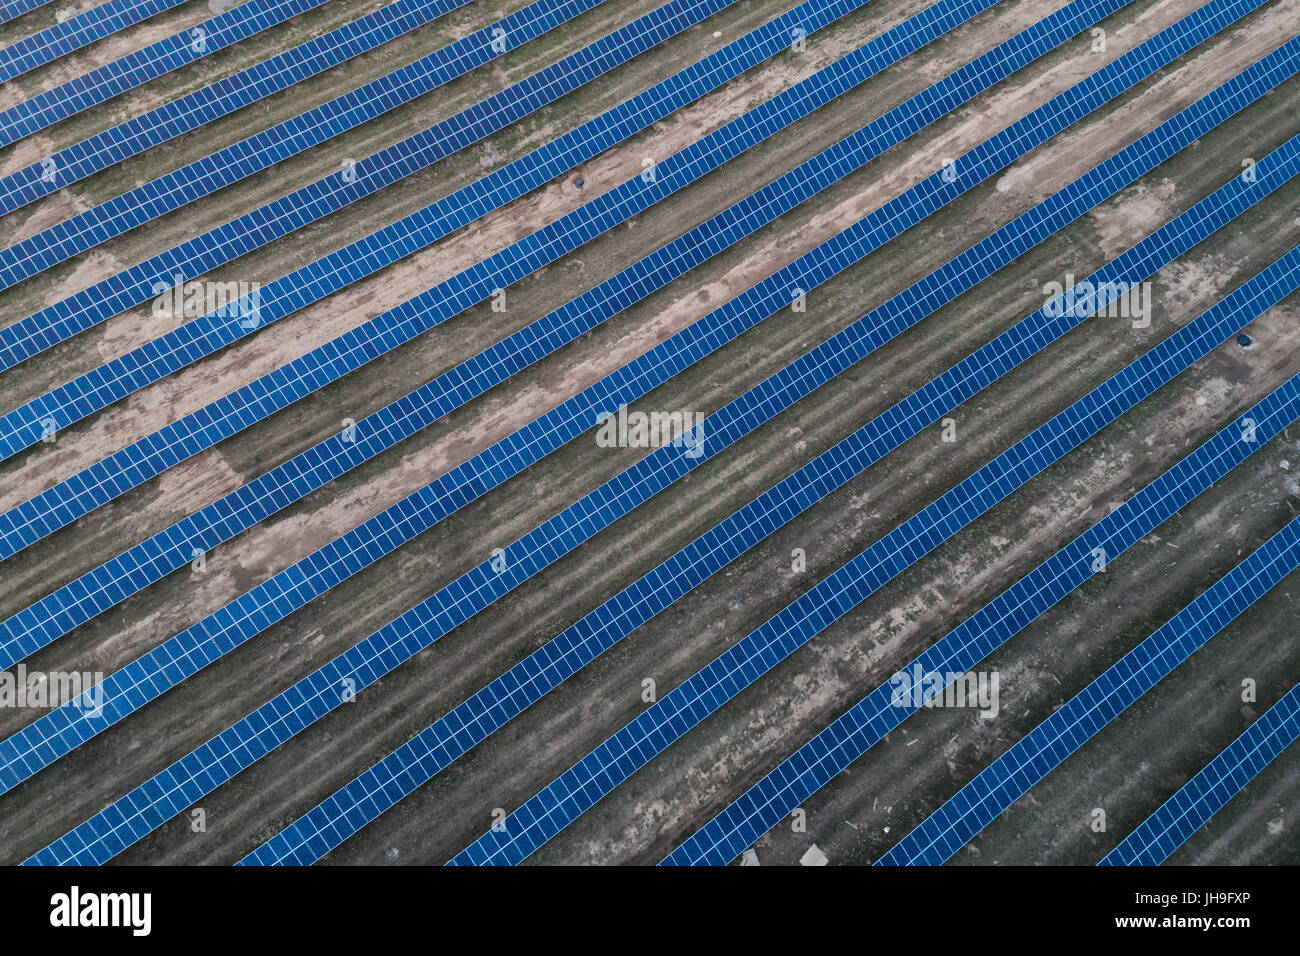 Solar panels placed on a countryside meadow. - Stock Image